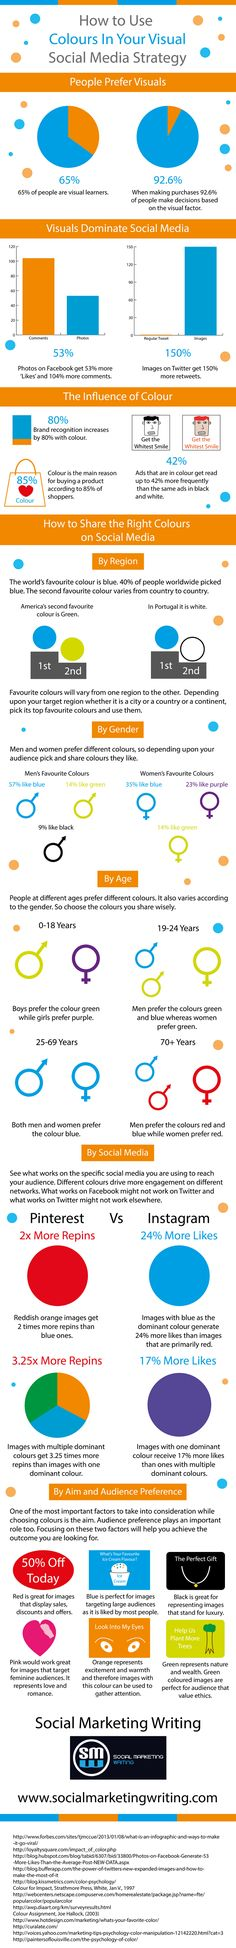 How to Use Colours in Your Visual #SocialMedia Strategy [Infographic] #PinterestTips